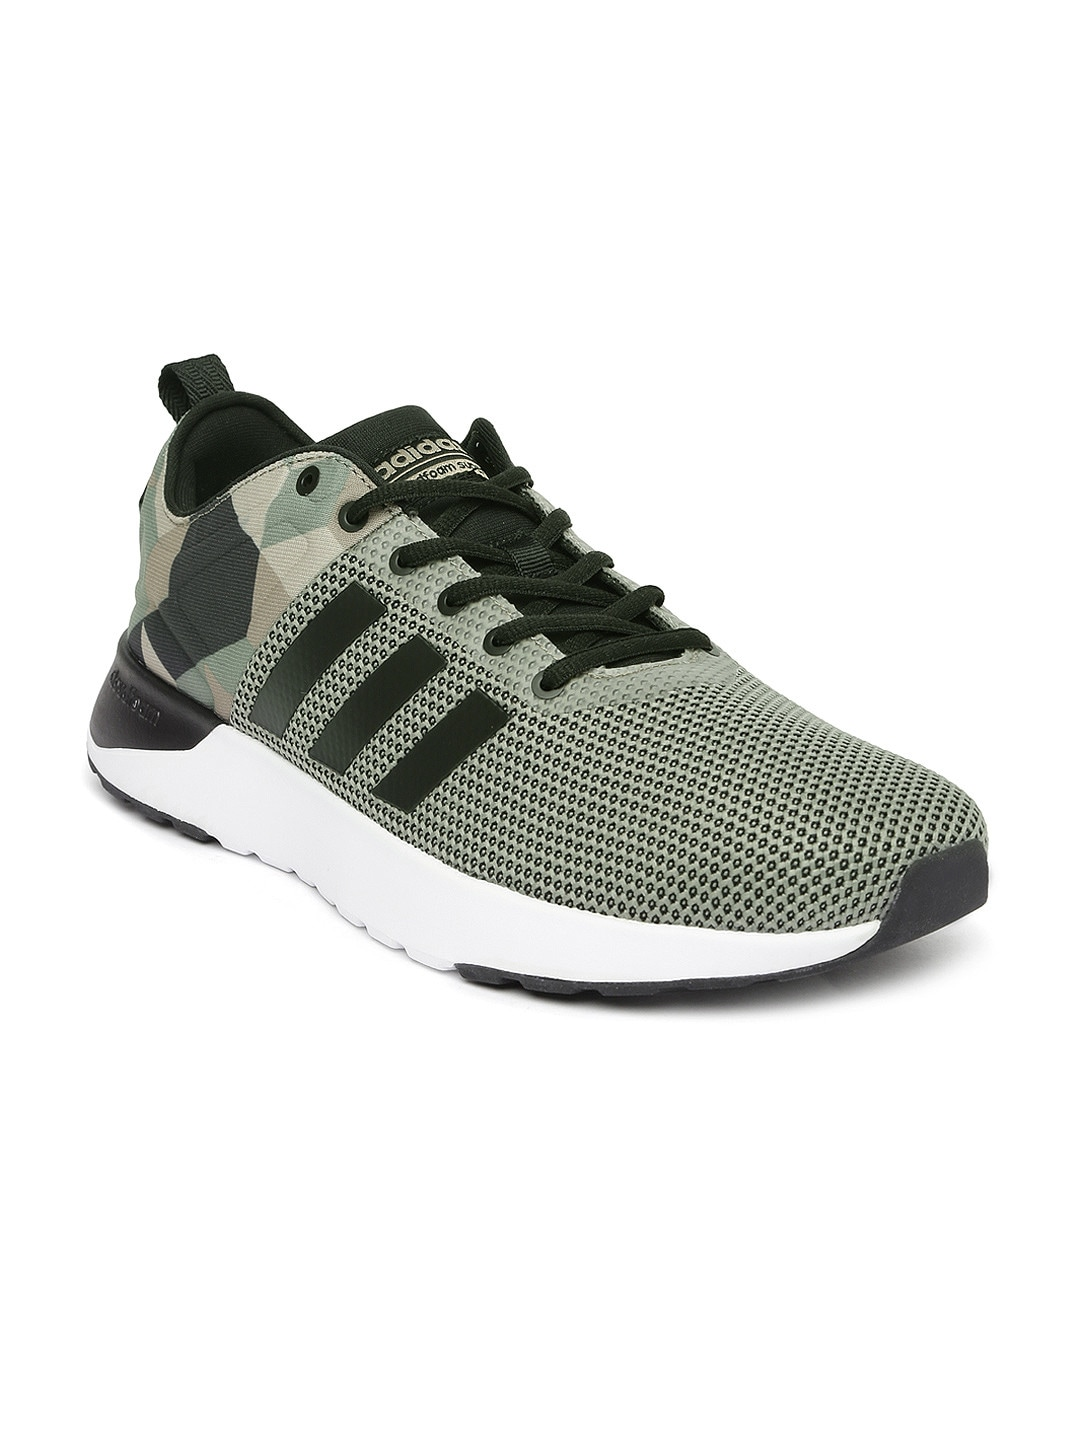 Adidas aw4165 Neo Men Olive Green Solid Cloudfoam Super Racer Sneakers-  Price in India b921b205a